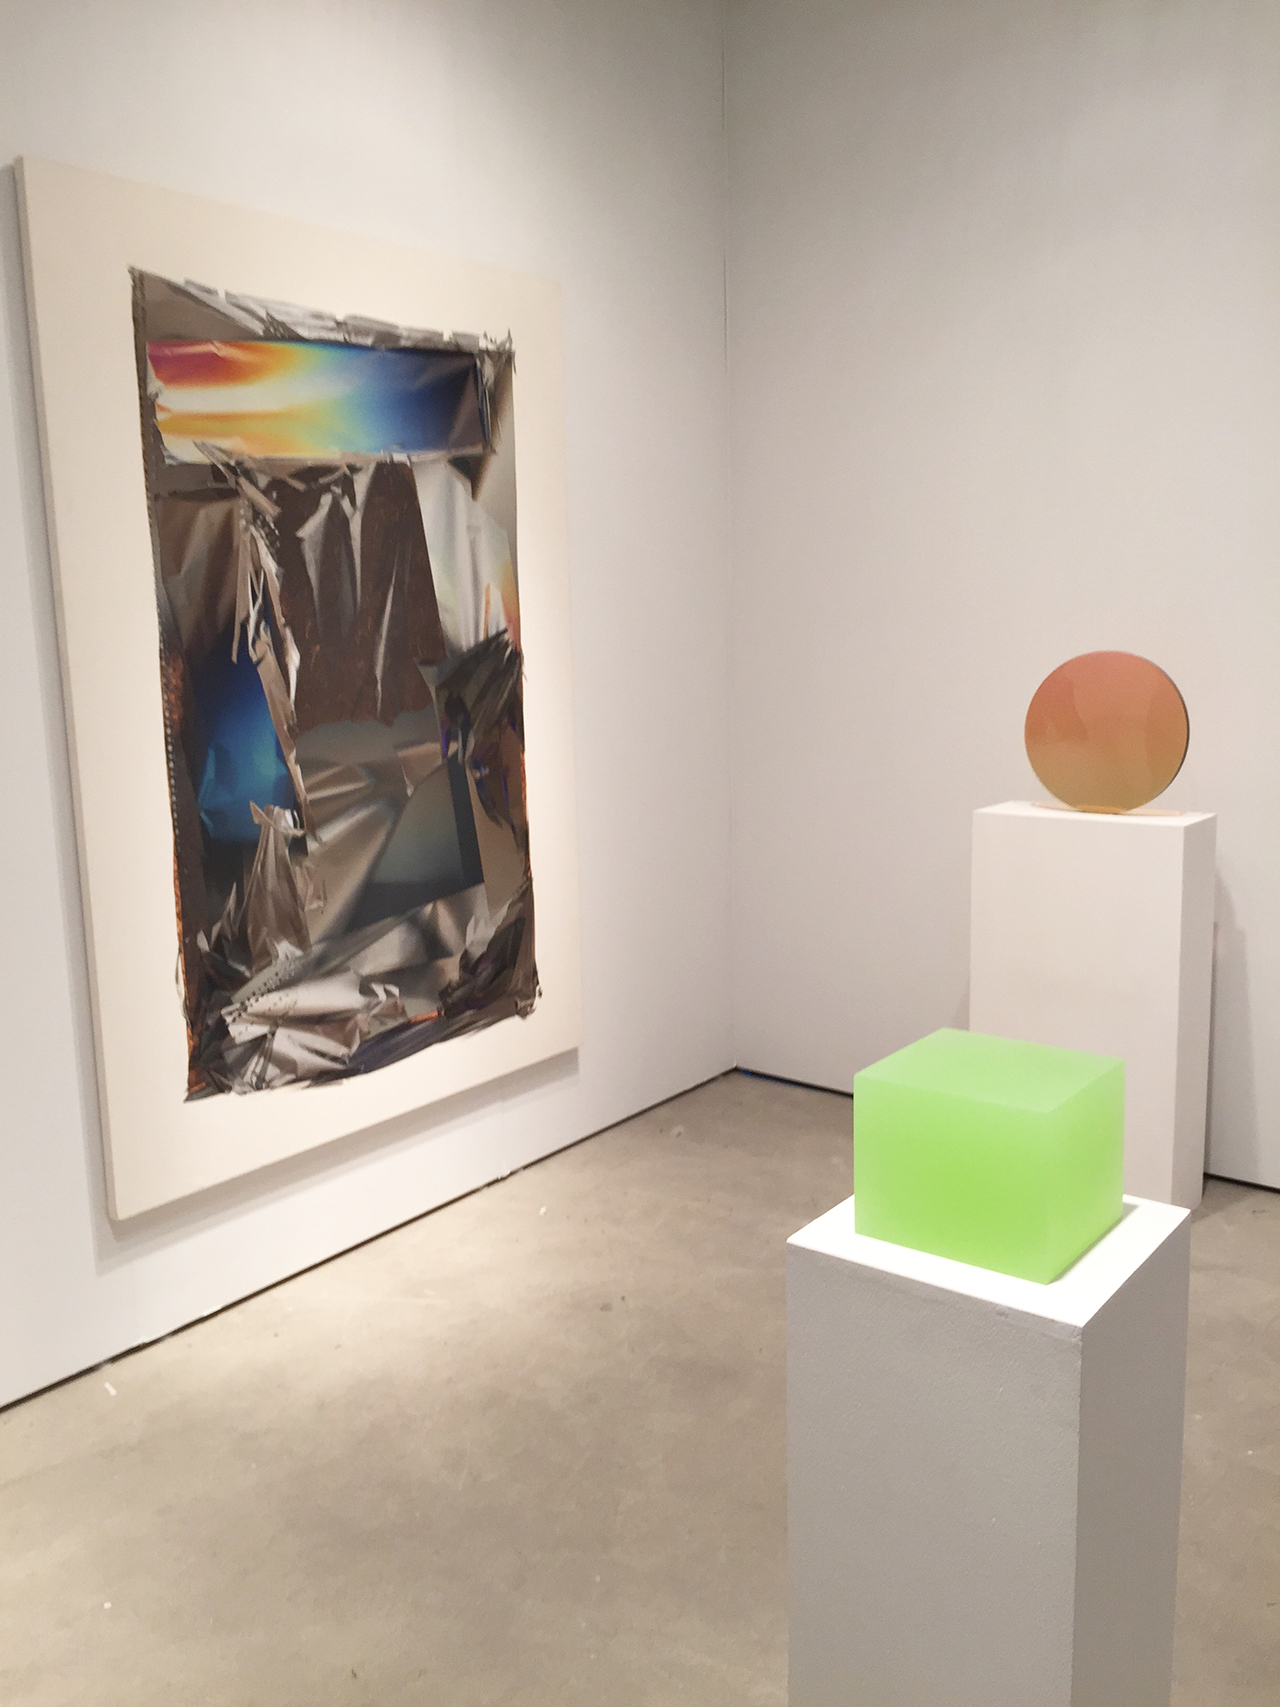 Peter Blake Gallery's booth, with work by Larry Bell at left